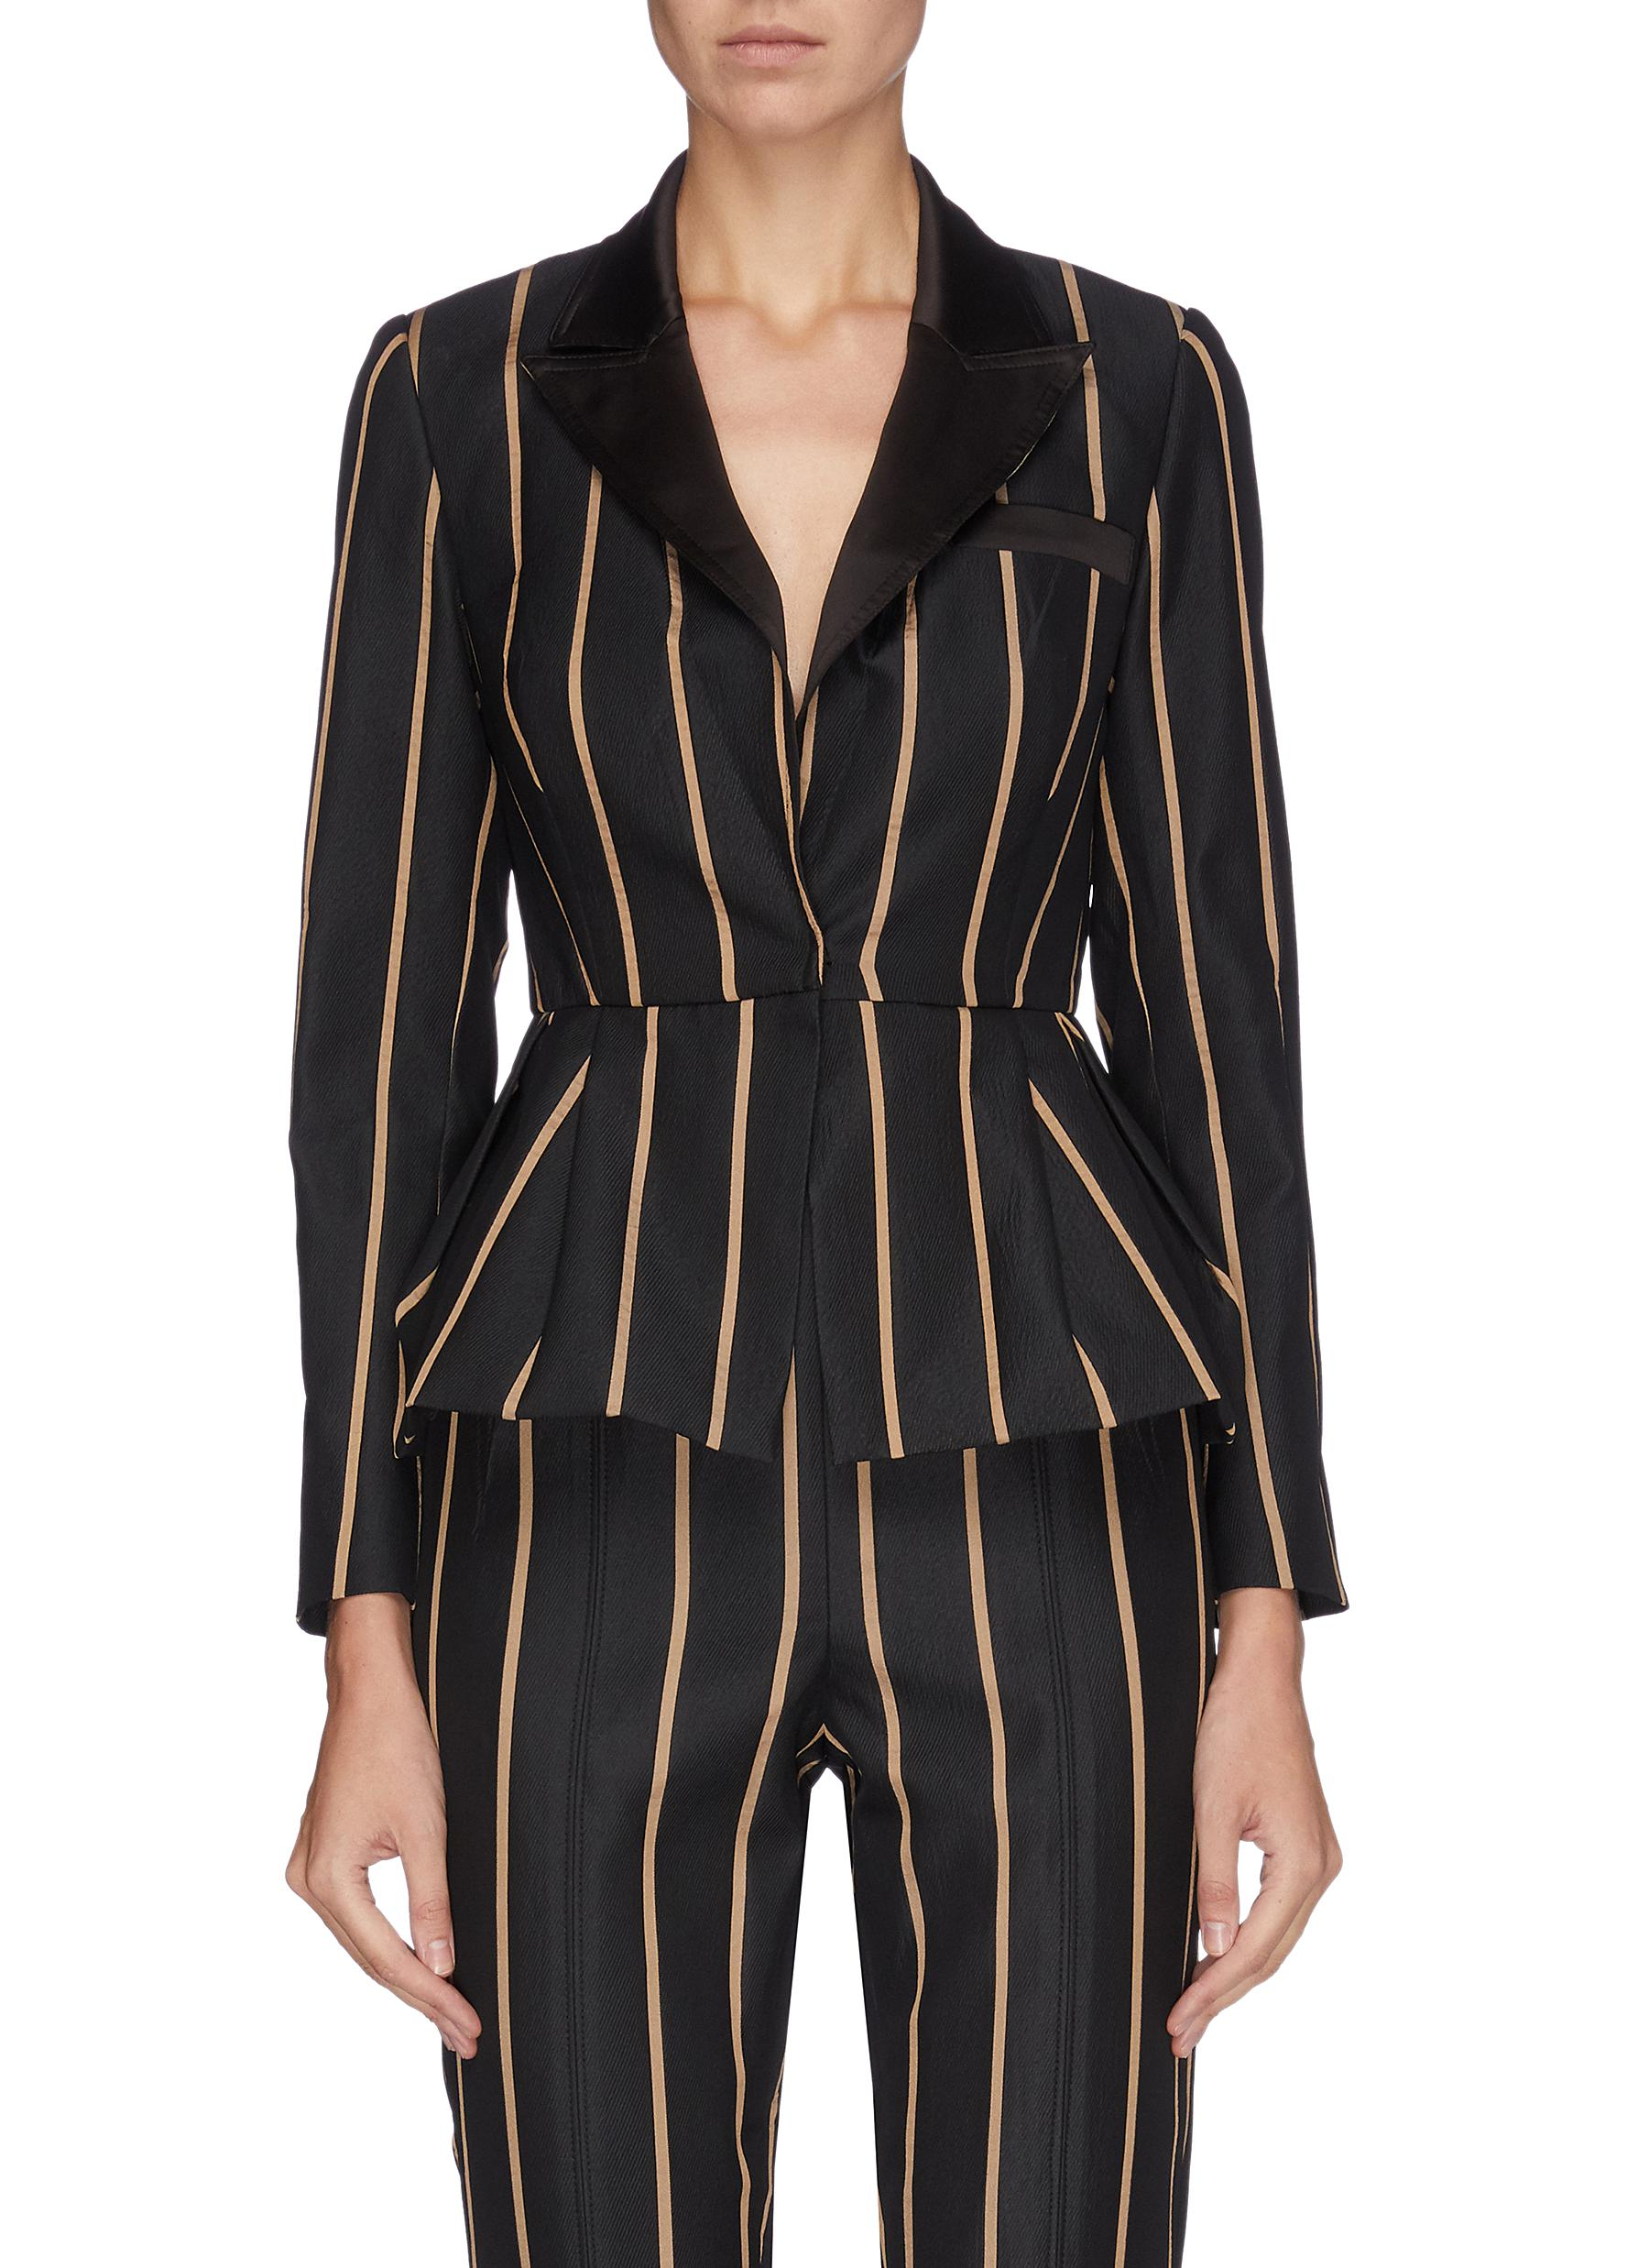 Peaked lapel stripe peplum top by Self-Portrait